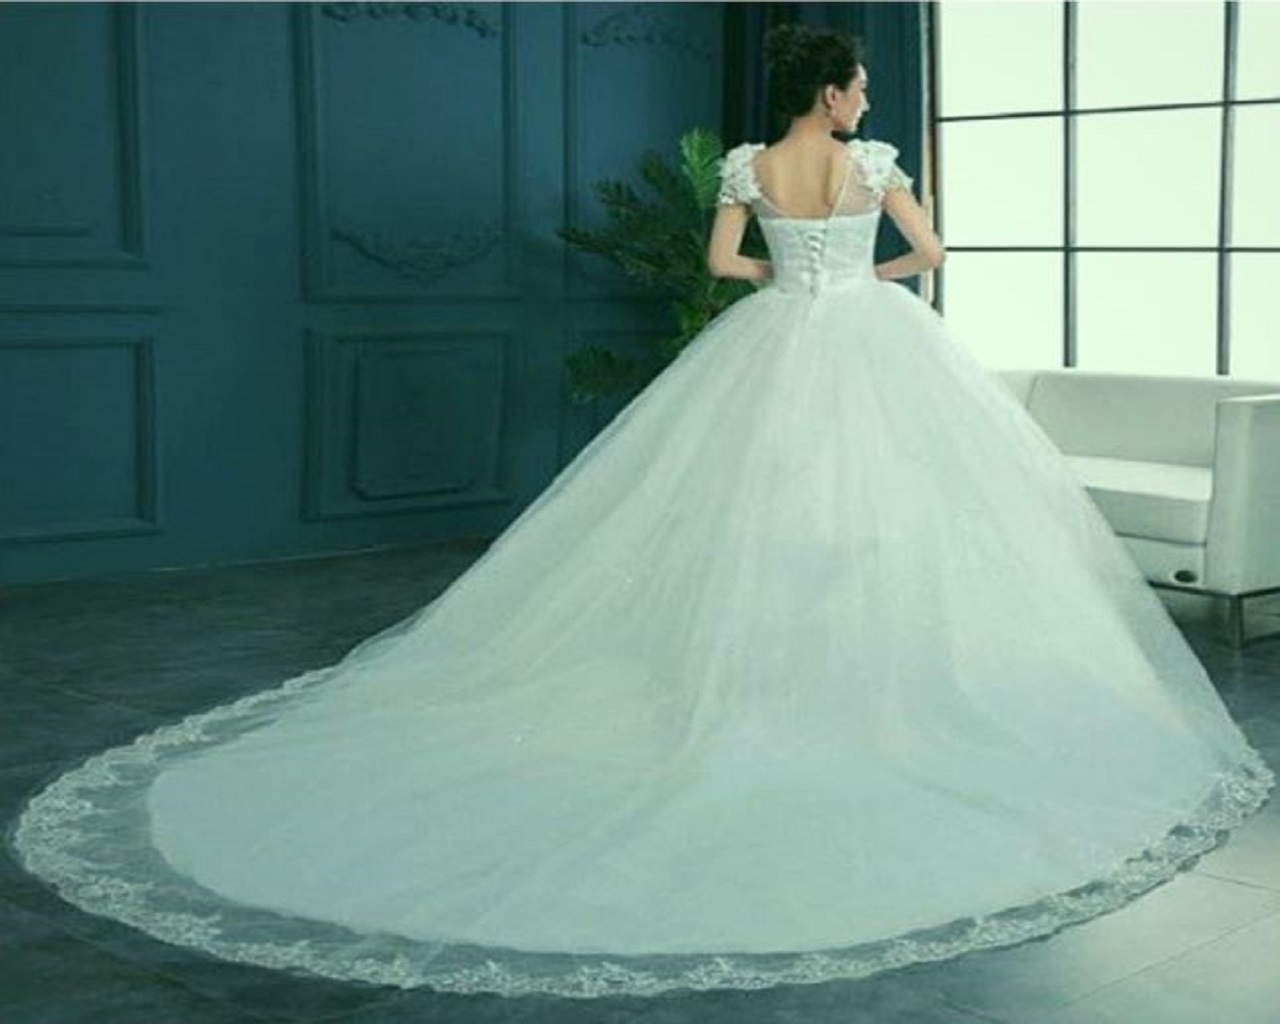 Wedding Dresses.Where Is The Best Cheaper,One?